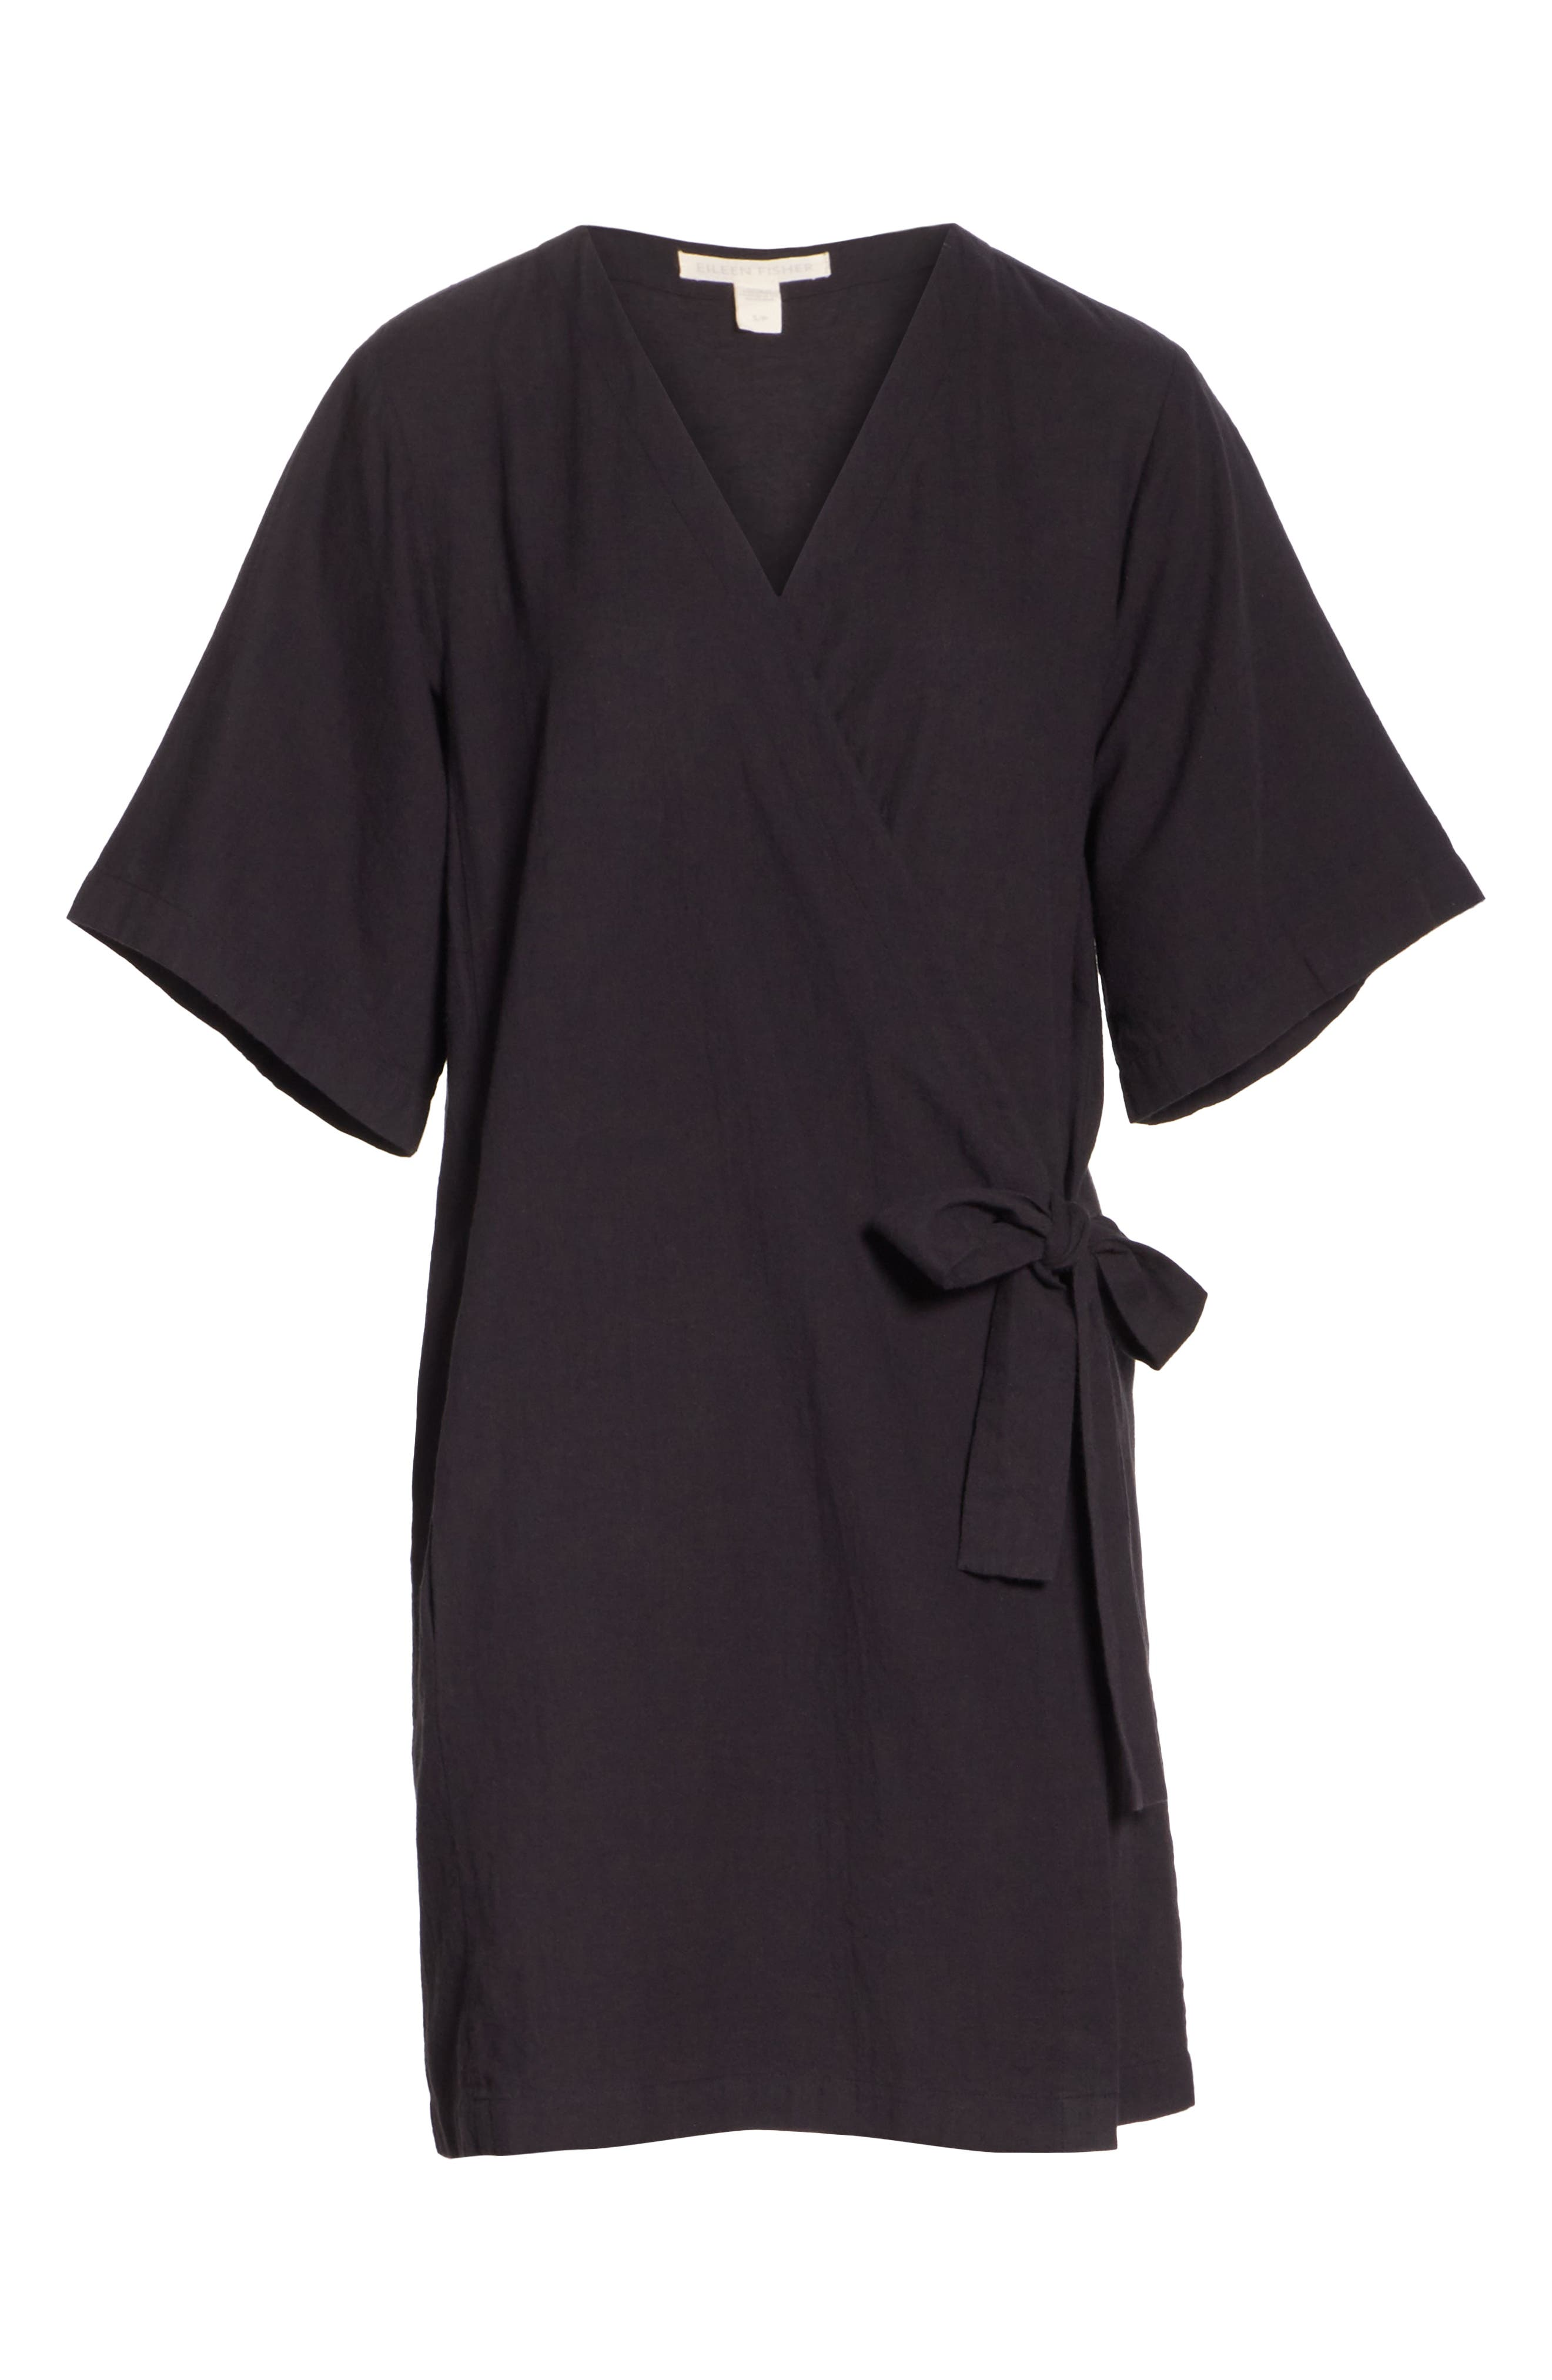 Kimono Sleeve Organic Cotton Blend Jacket,                             Alternate thumbnail 6, color,                             Black